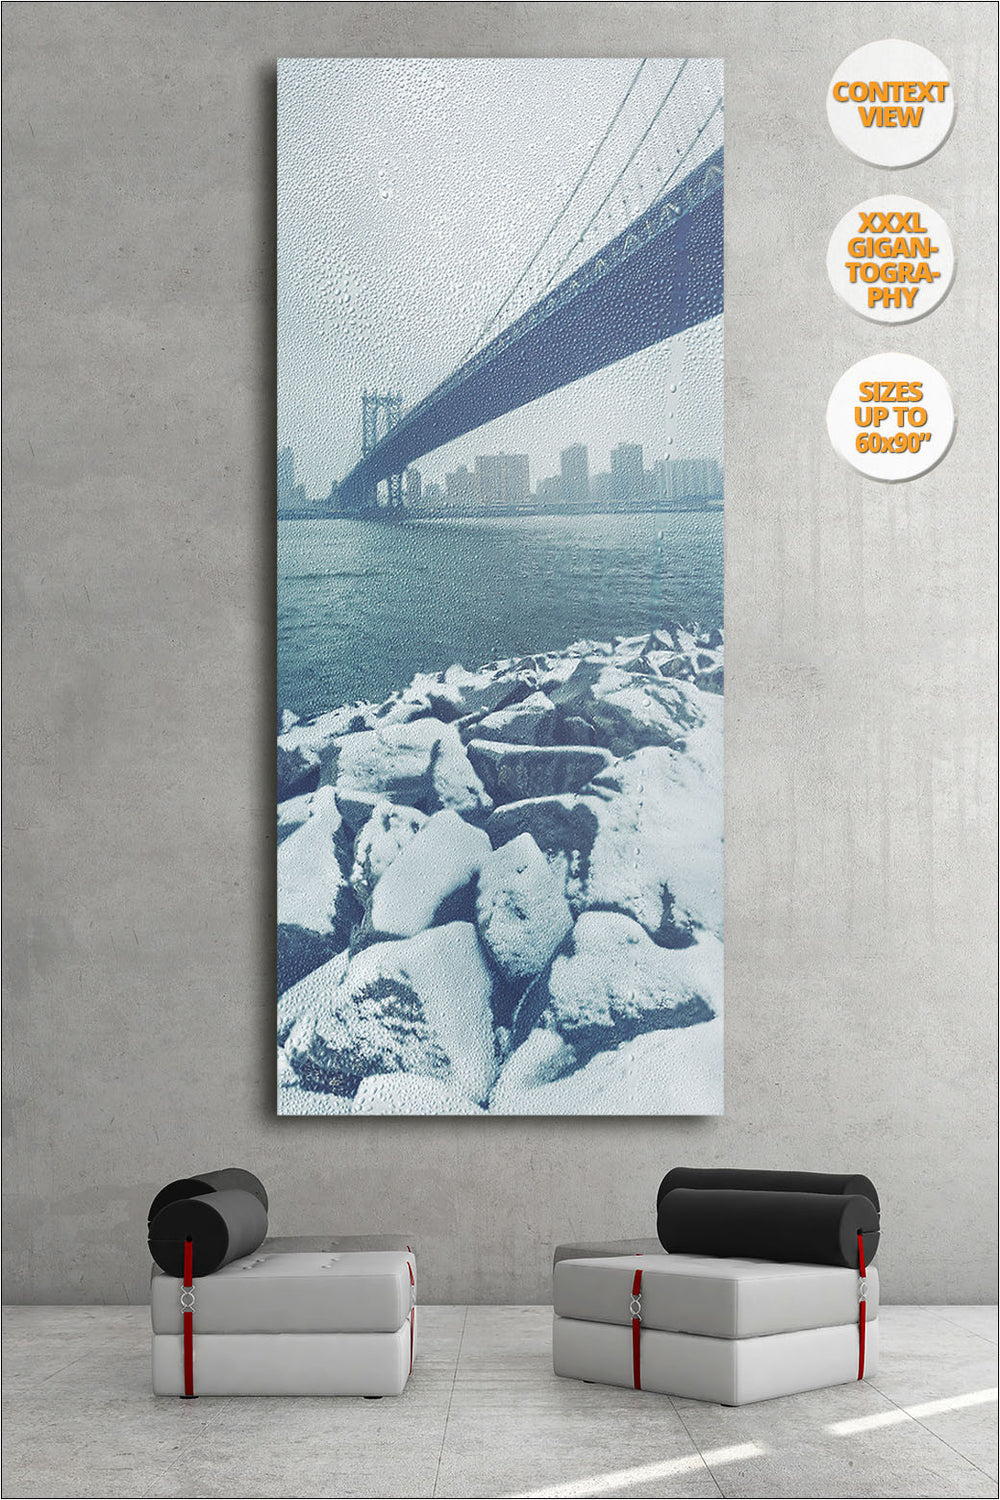 Manhattan Bridge in Blizzard, New York. | View of the Print hanged in Living Room.